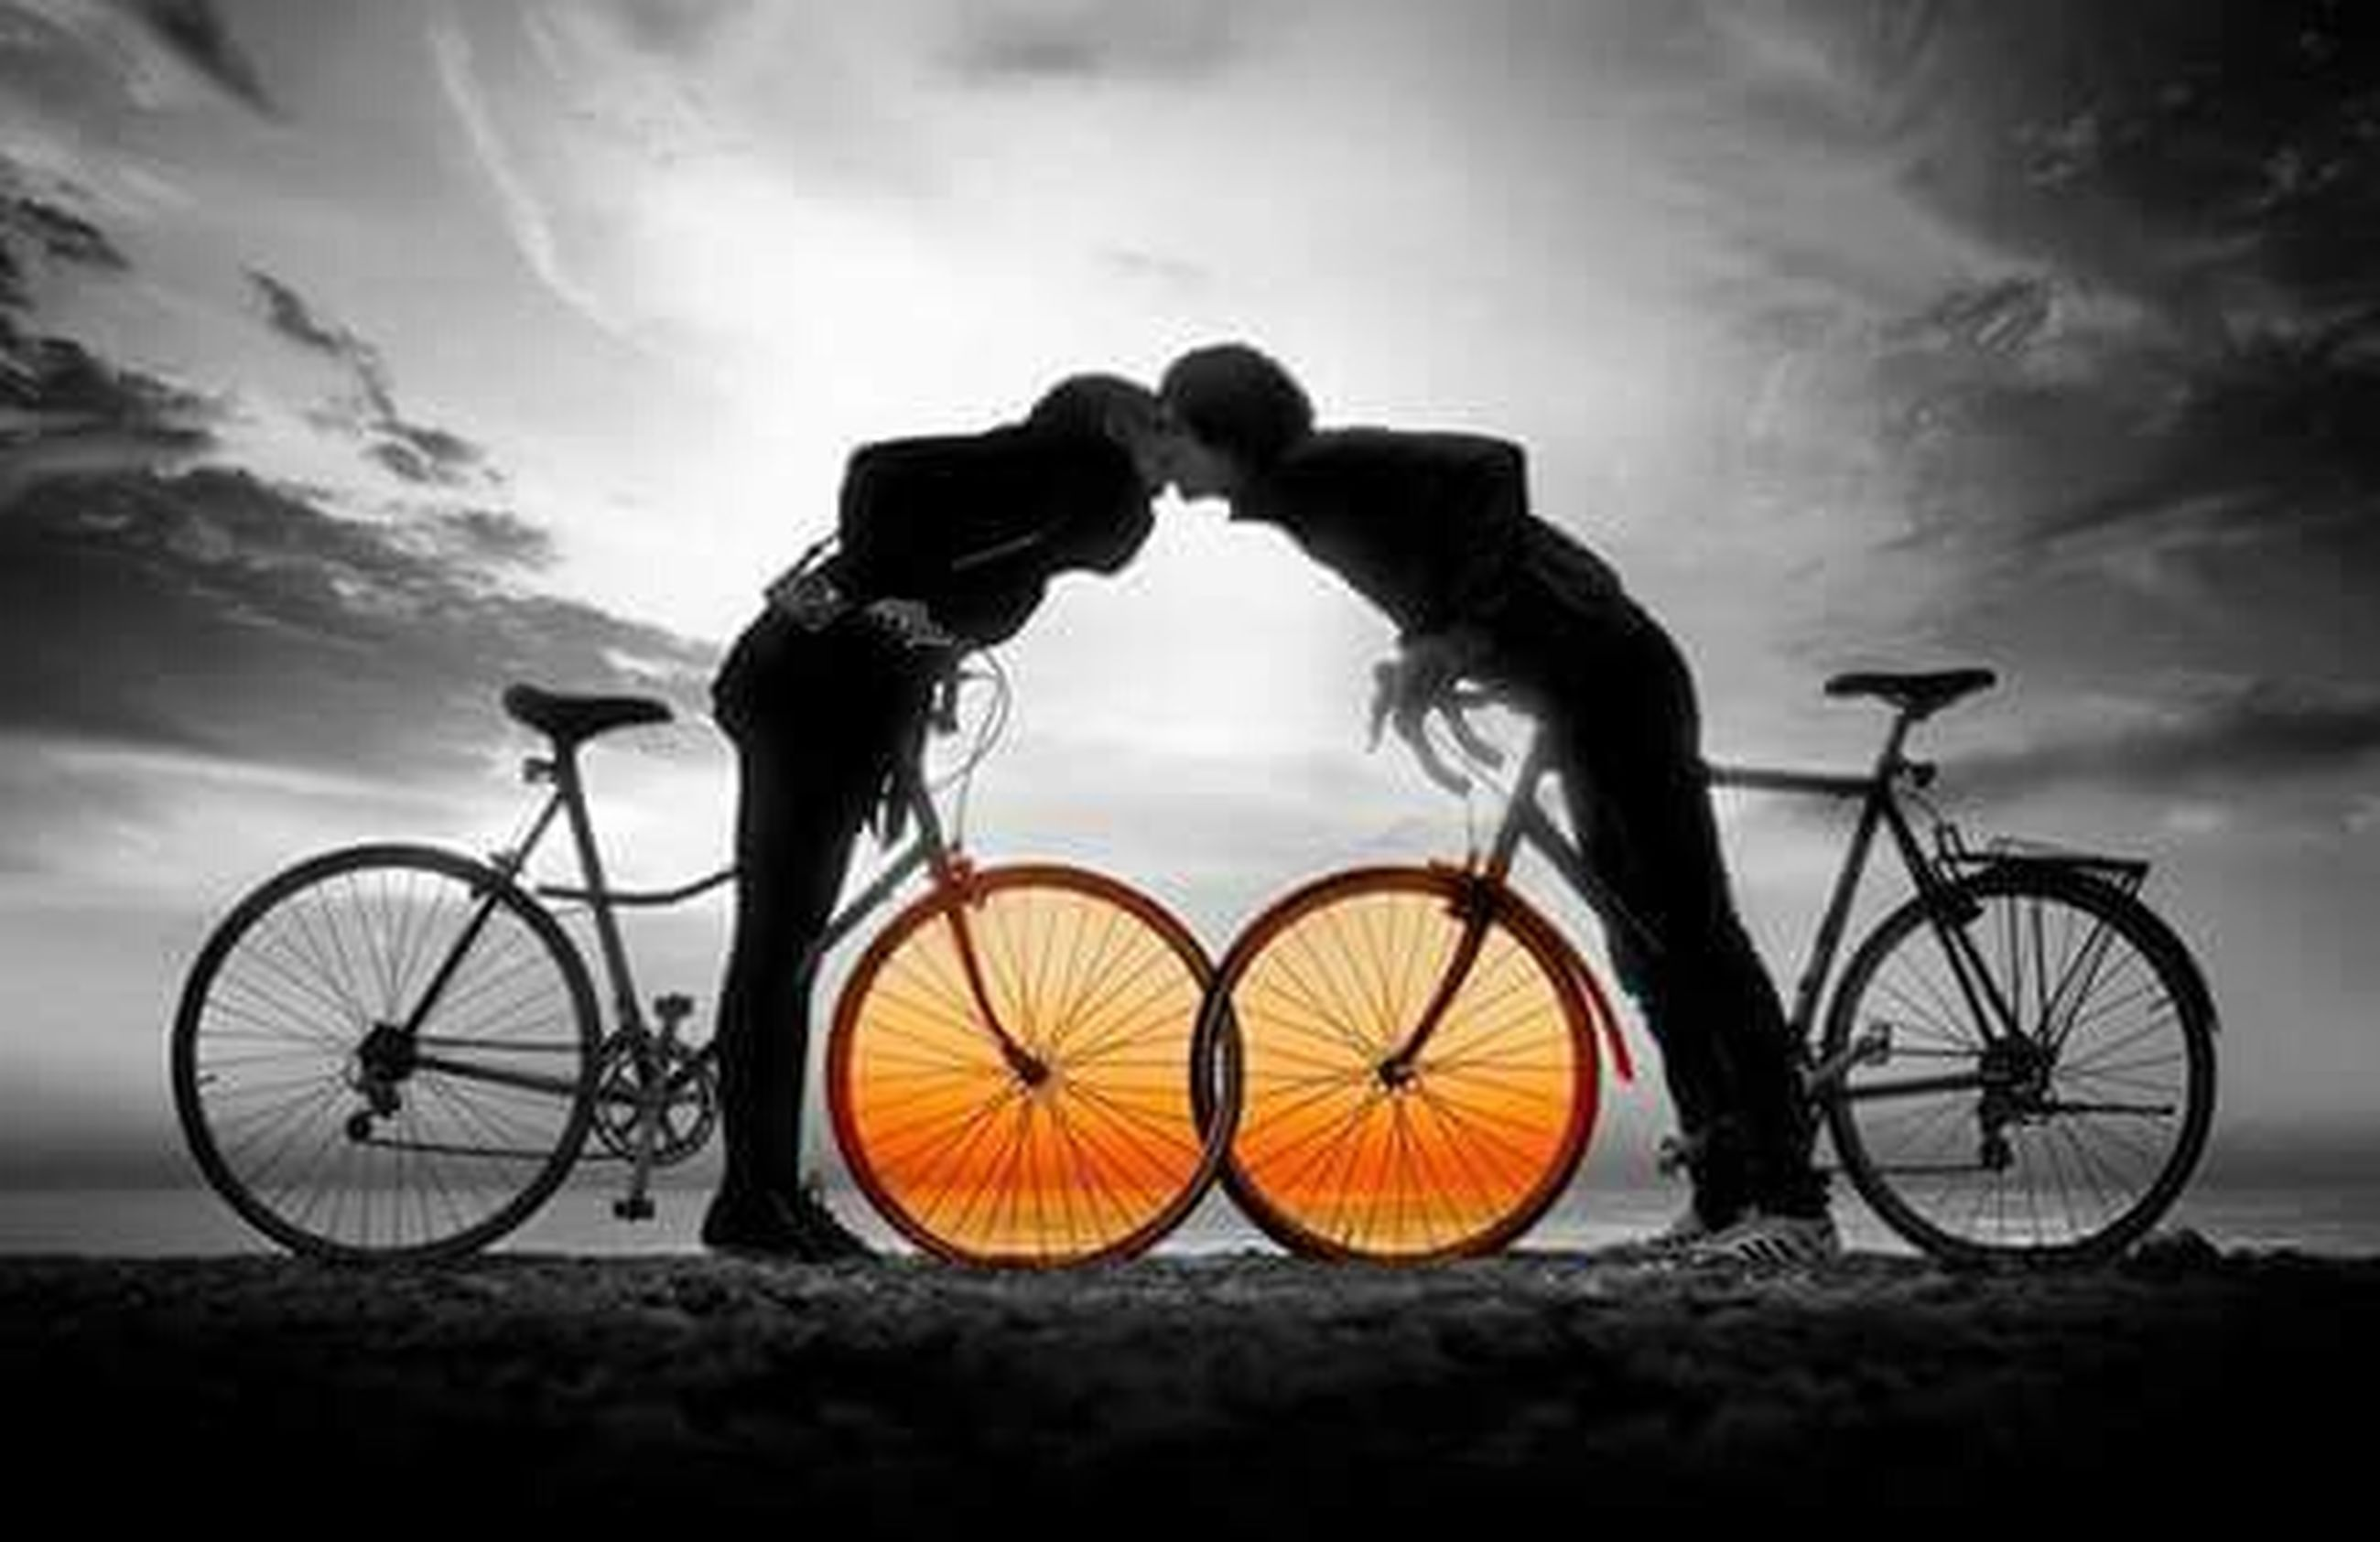 sunset, bicycle, sky, transportation, cloud - sky, mode of transport, silhouette, orange color, land vehicle, stationary, cloud, parking, yellow, railing, parked, metal, no people, dusk, outdoors, cloudy